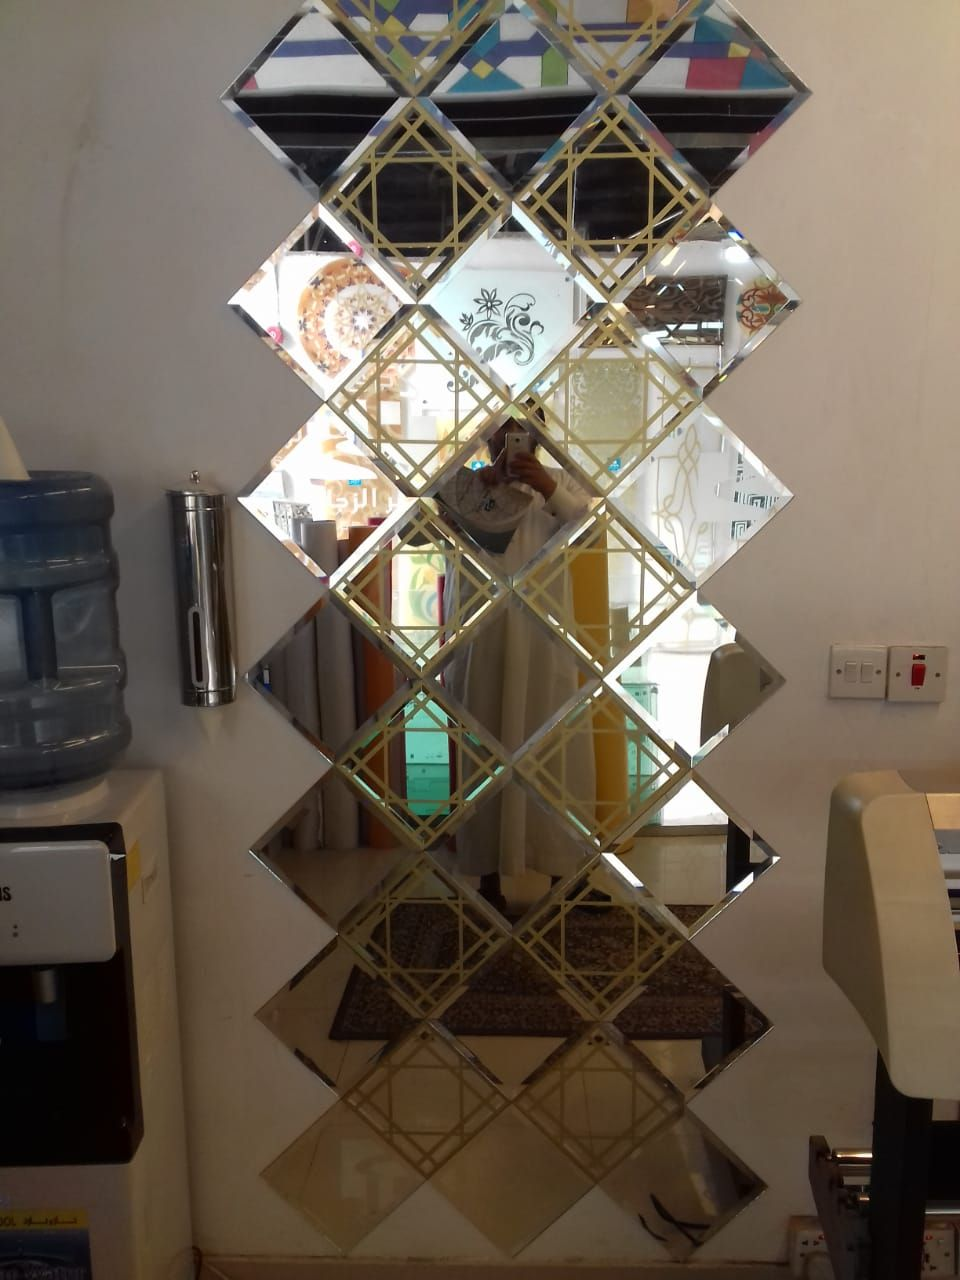 Pin By سبحان الله On زجاجة Decor Home Decor Lamp